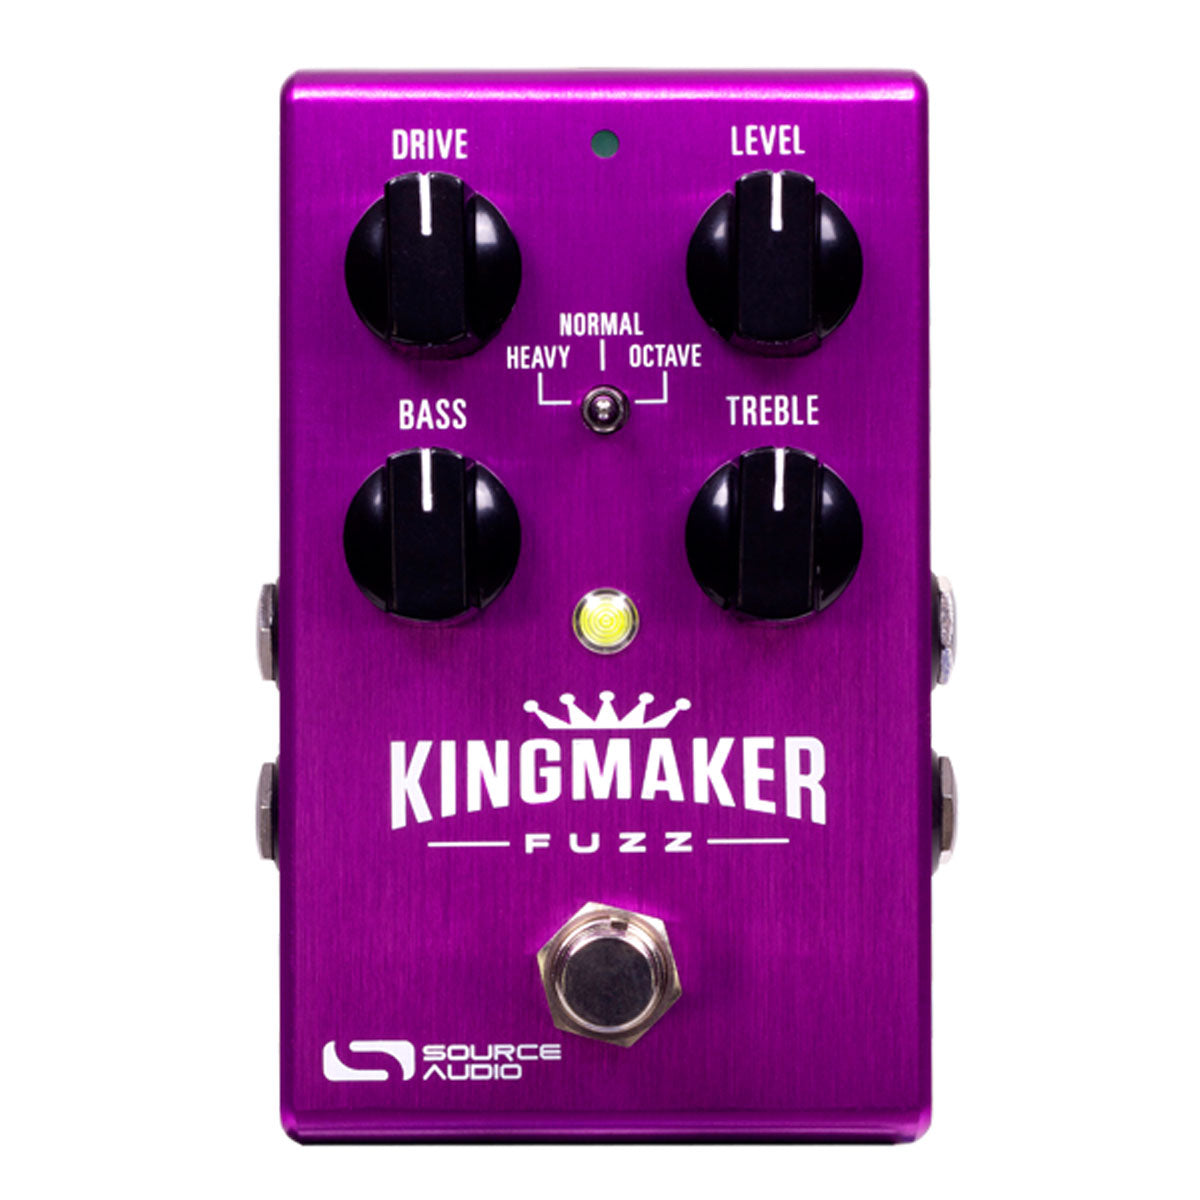 Source Audio One Series Kingmaker Fuzz Effects Pedal